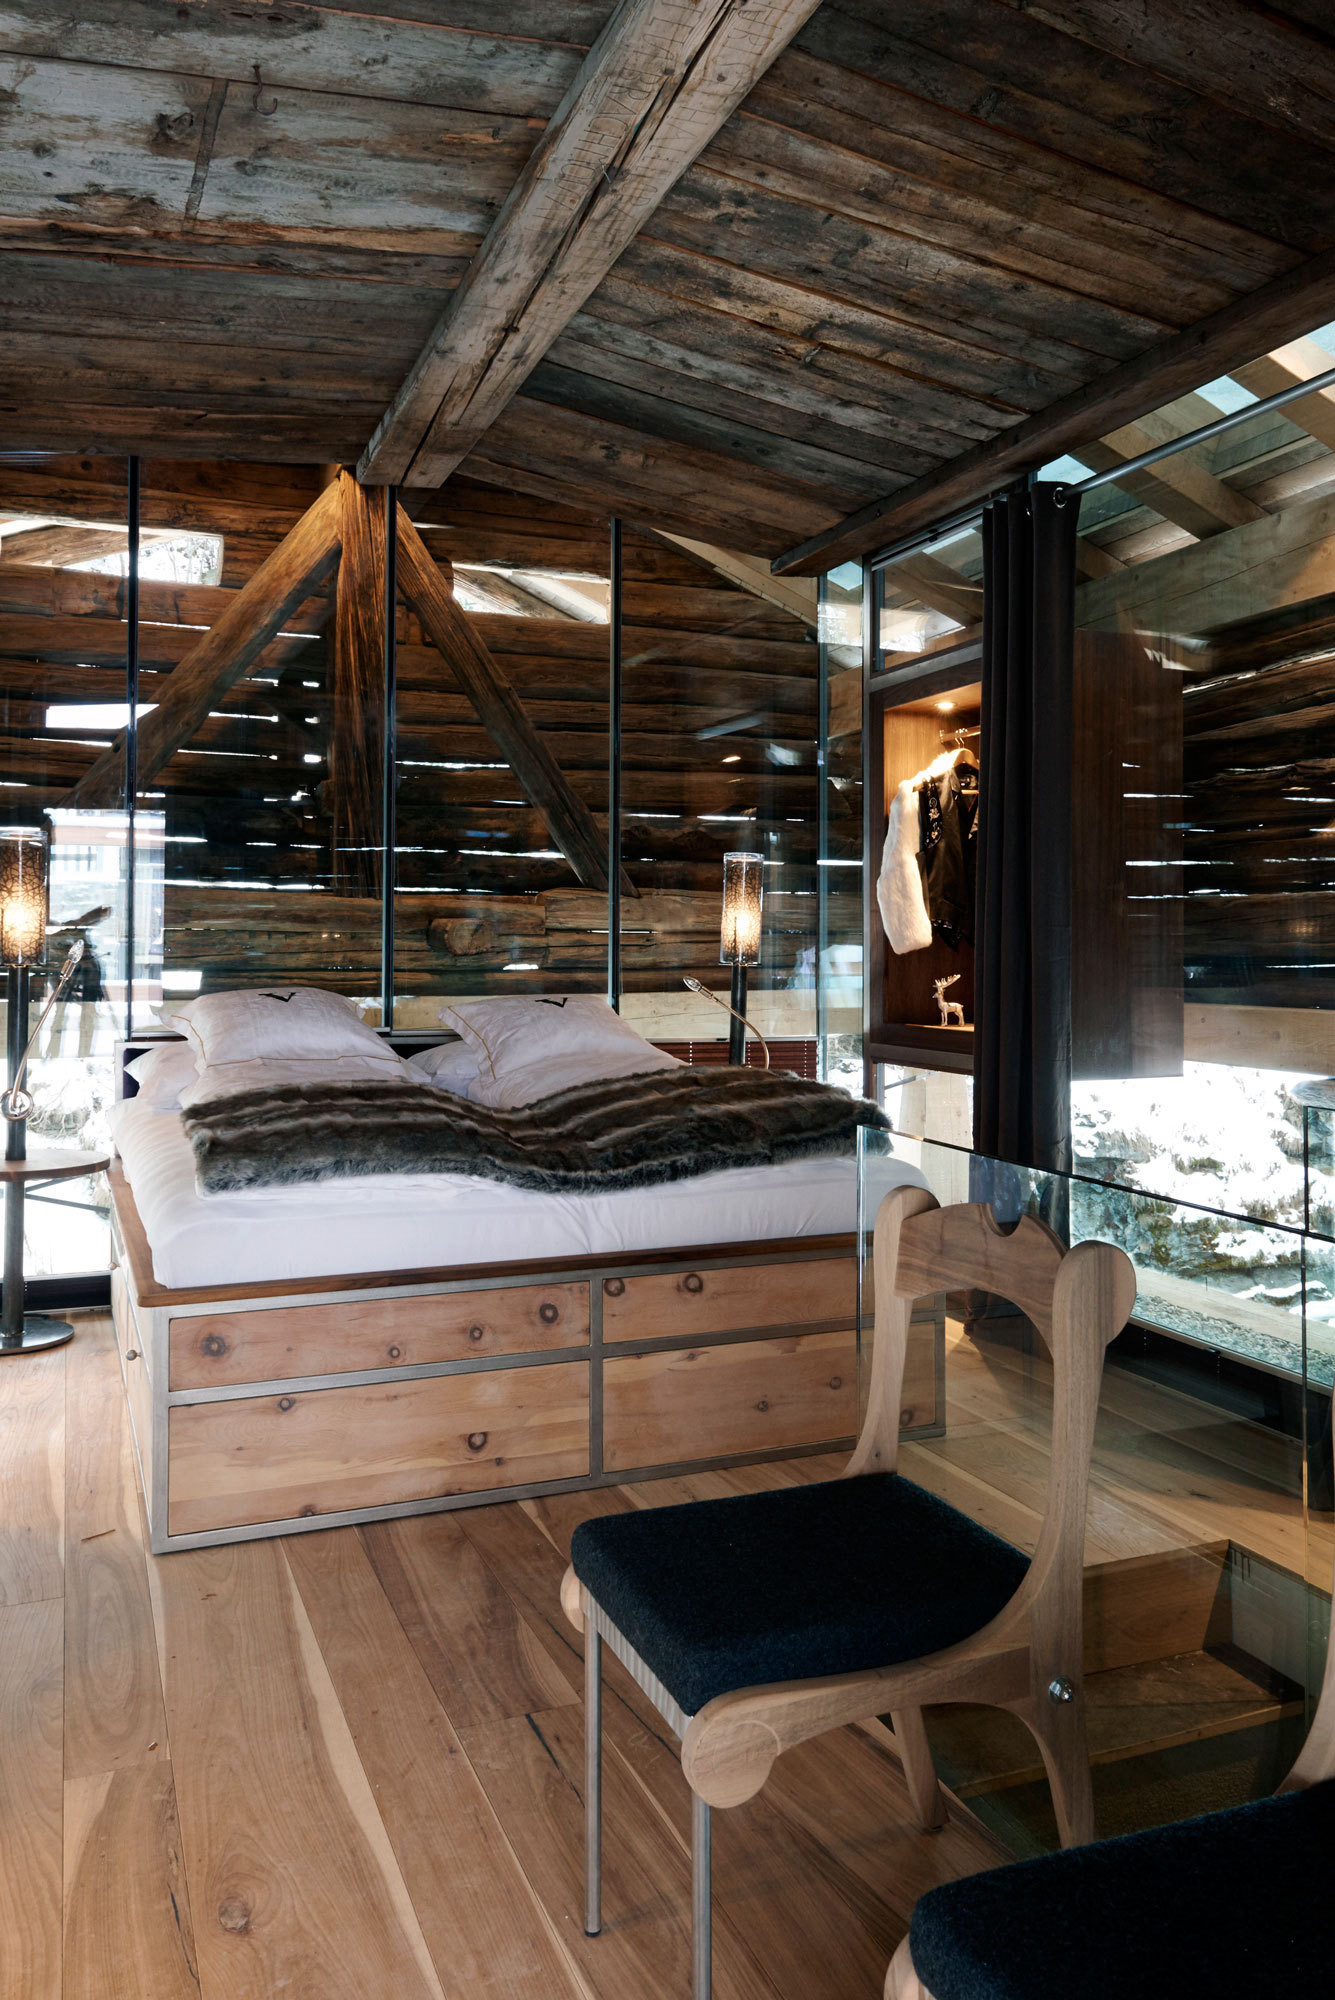 barn office designs. A Glass-enclosed Bedroom Snuggles Inside 15th-century Hay Barn, Attached By Barn Office Designs